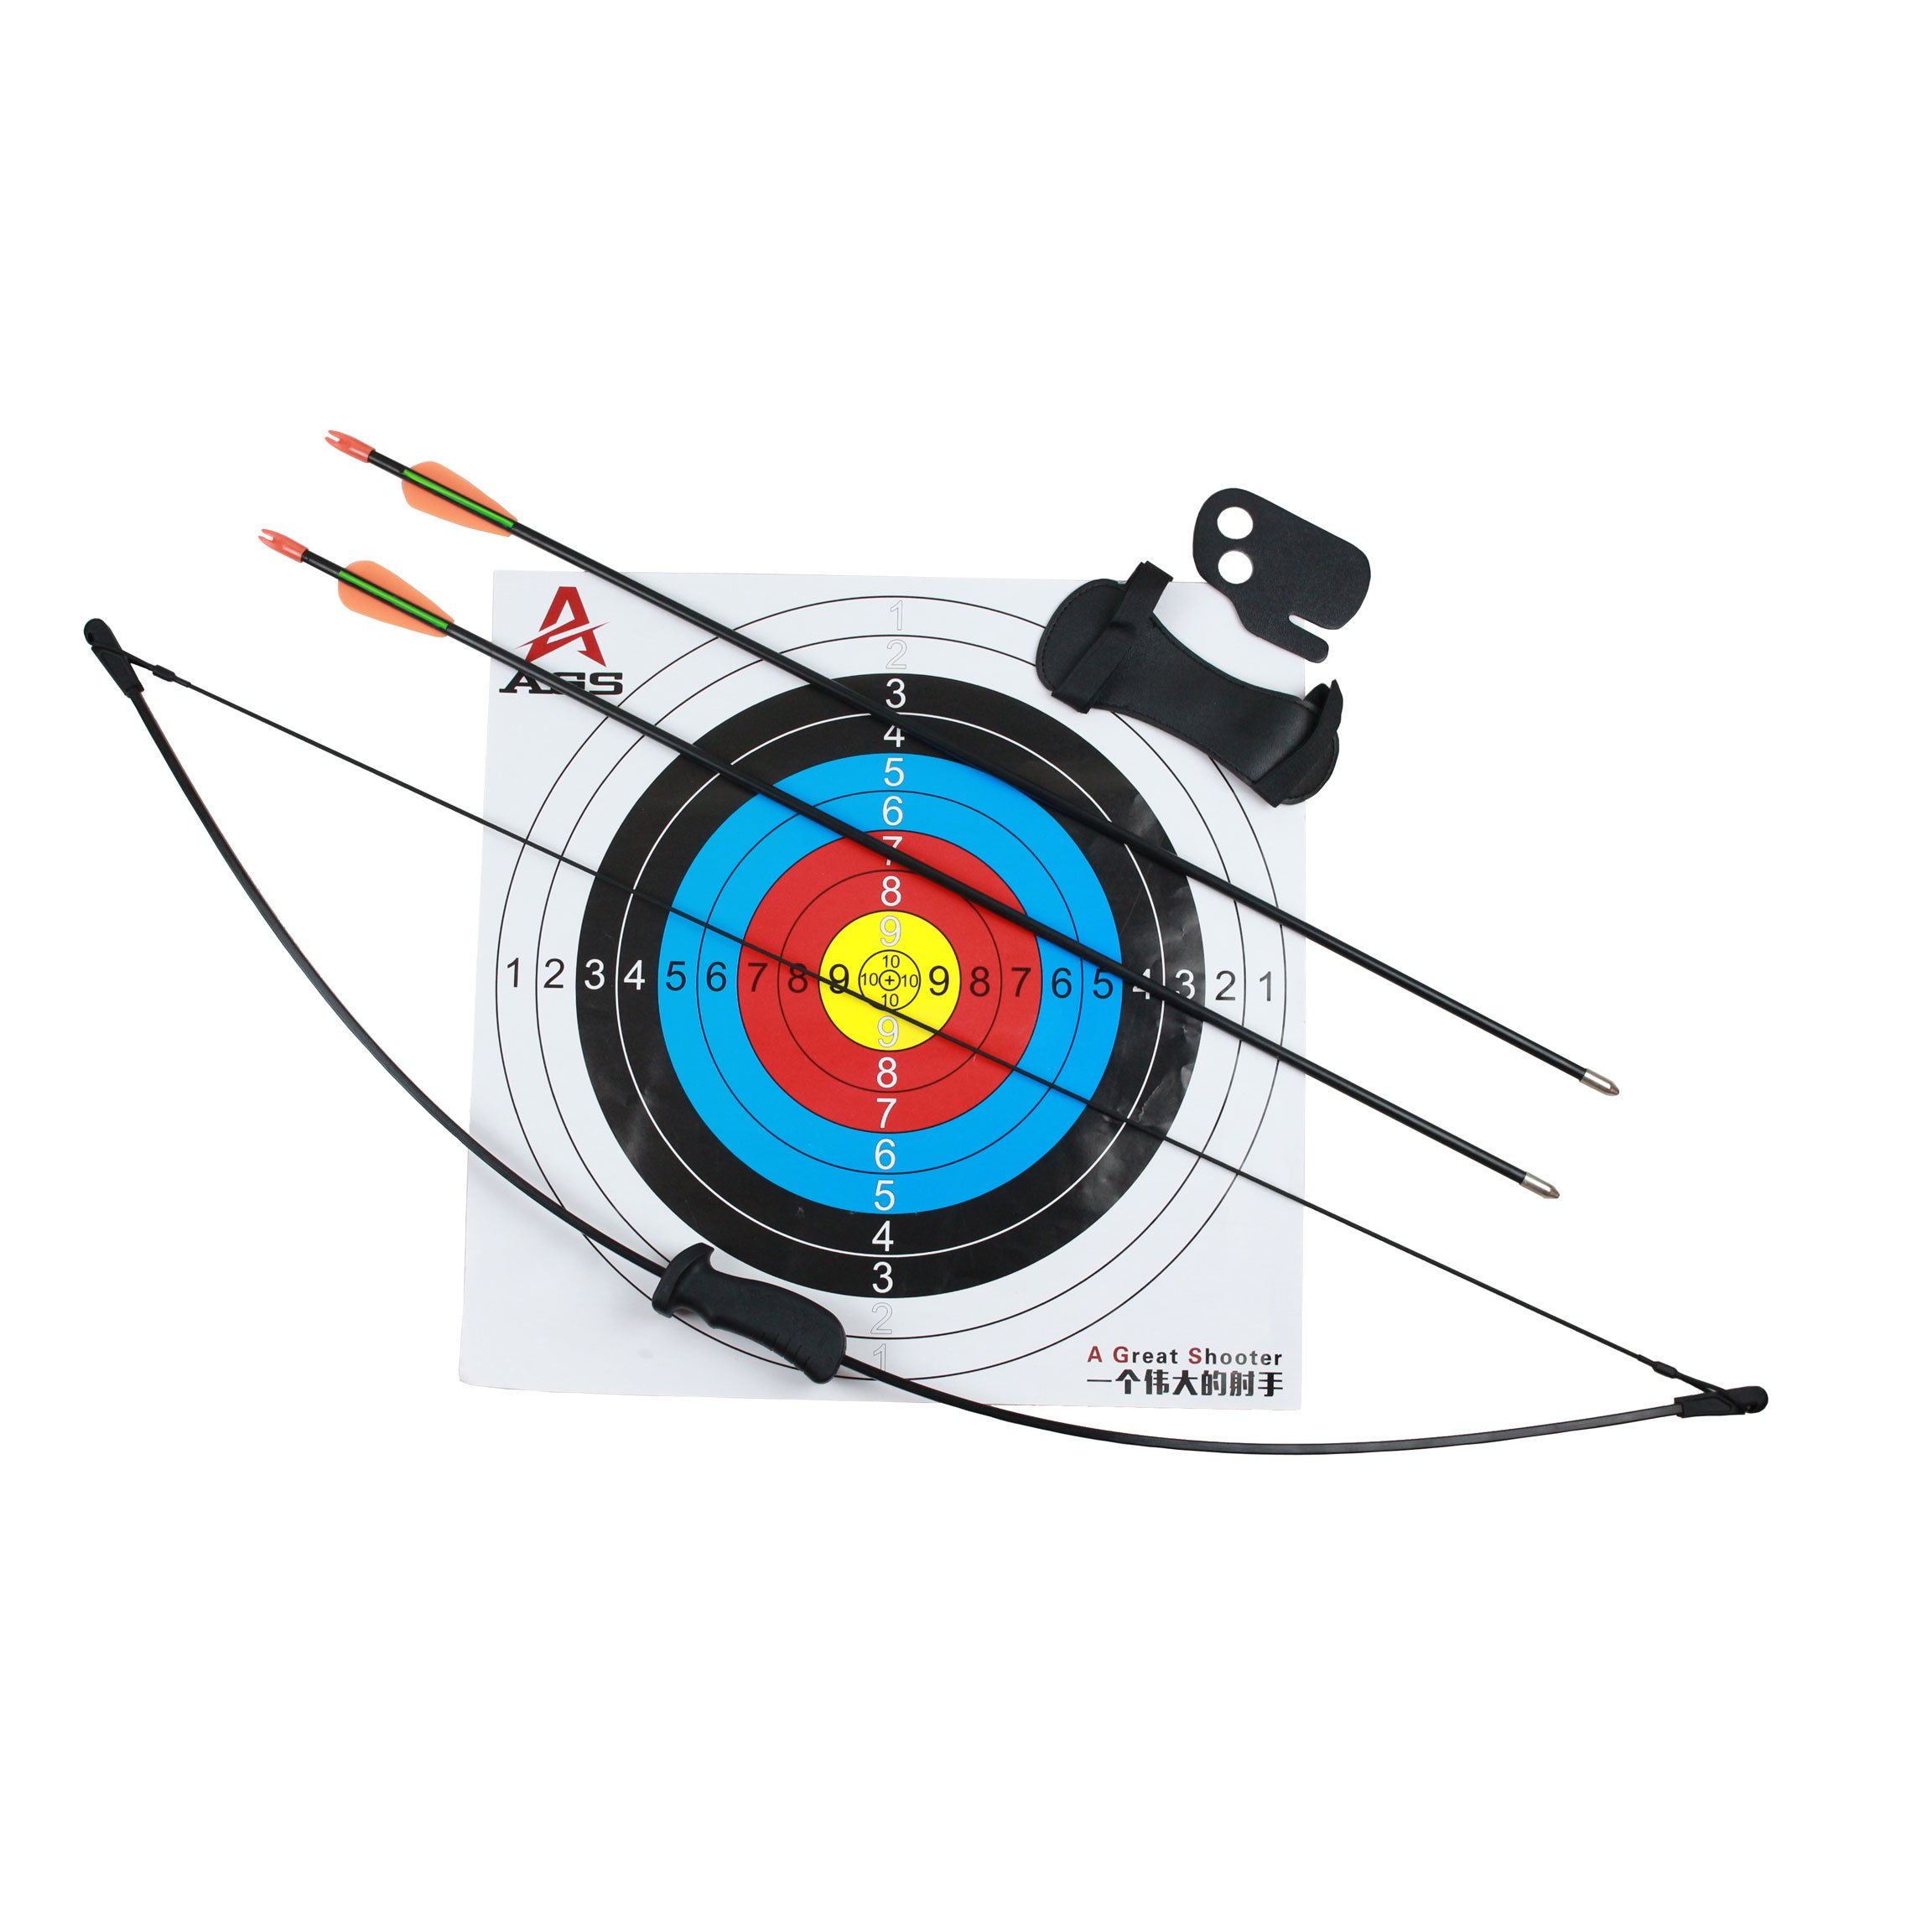 Geelife Archery Bow and Arrow Set for Kids Teens Youth Outdoor Sports Game Hunting Toy Gift Bow Set with 2 Arrows and Target Sheet 16 Lb